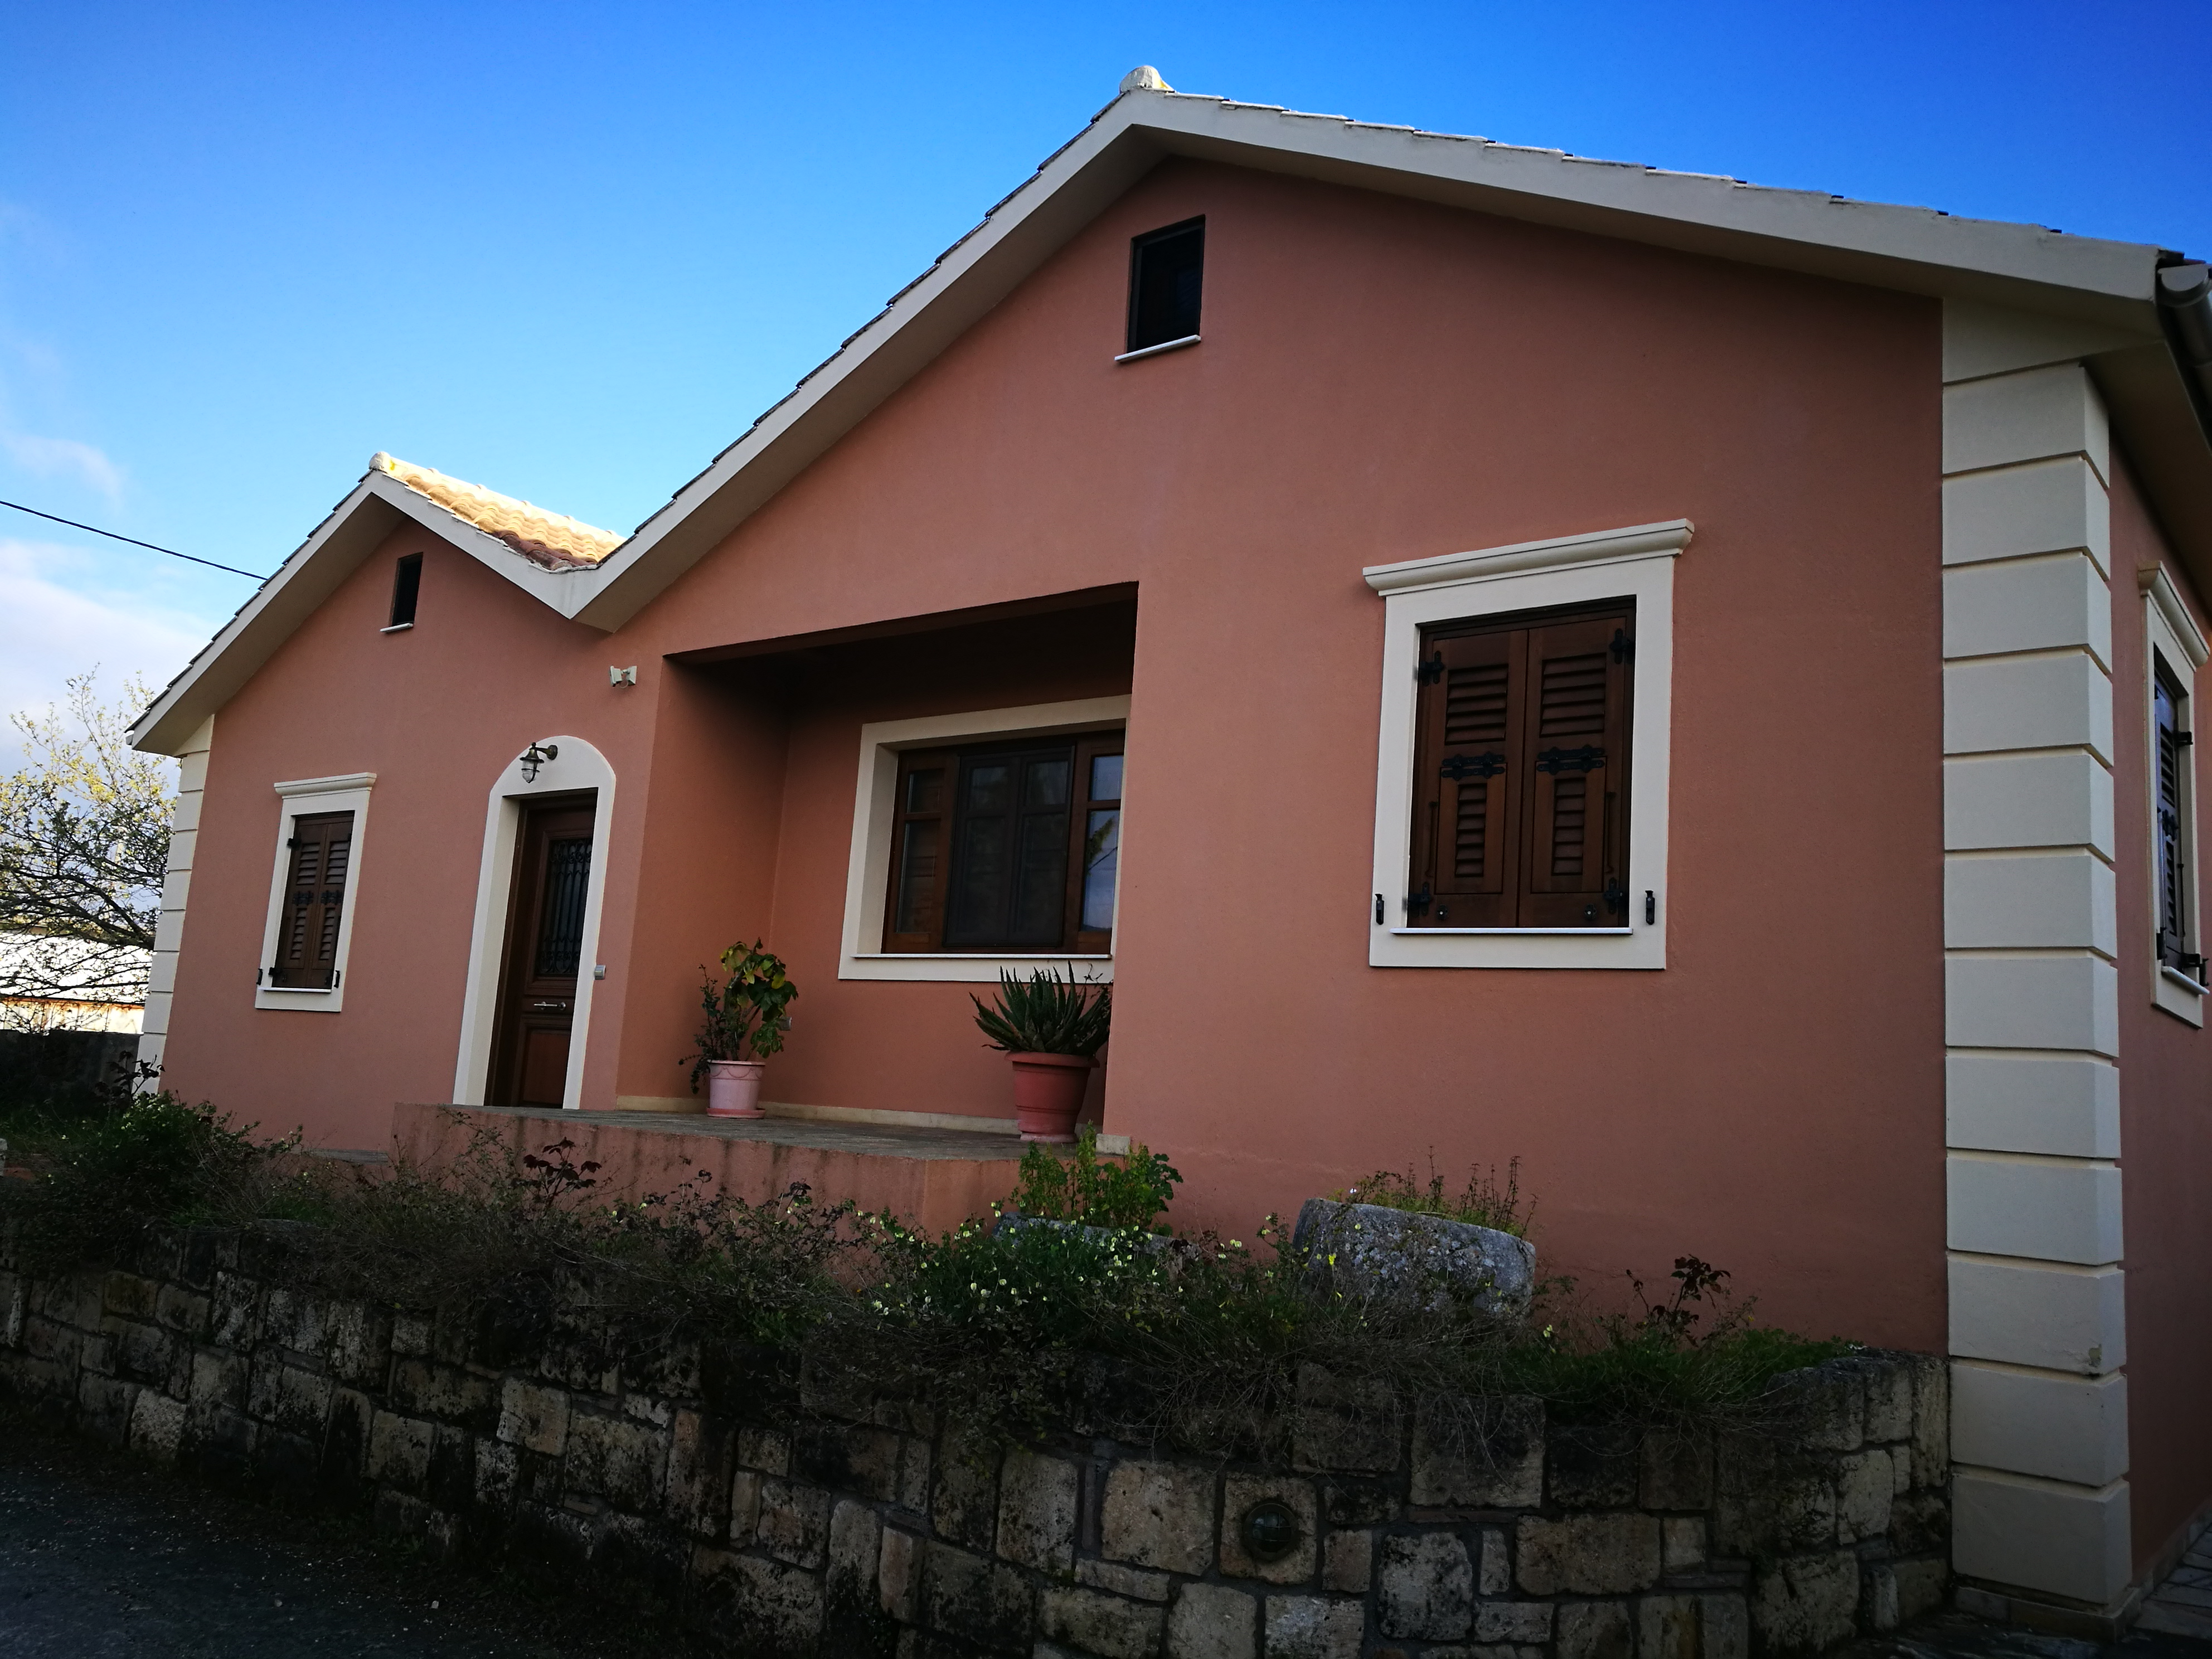 Eco house for sale in keramies village sold for Eco houses for sale